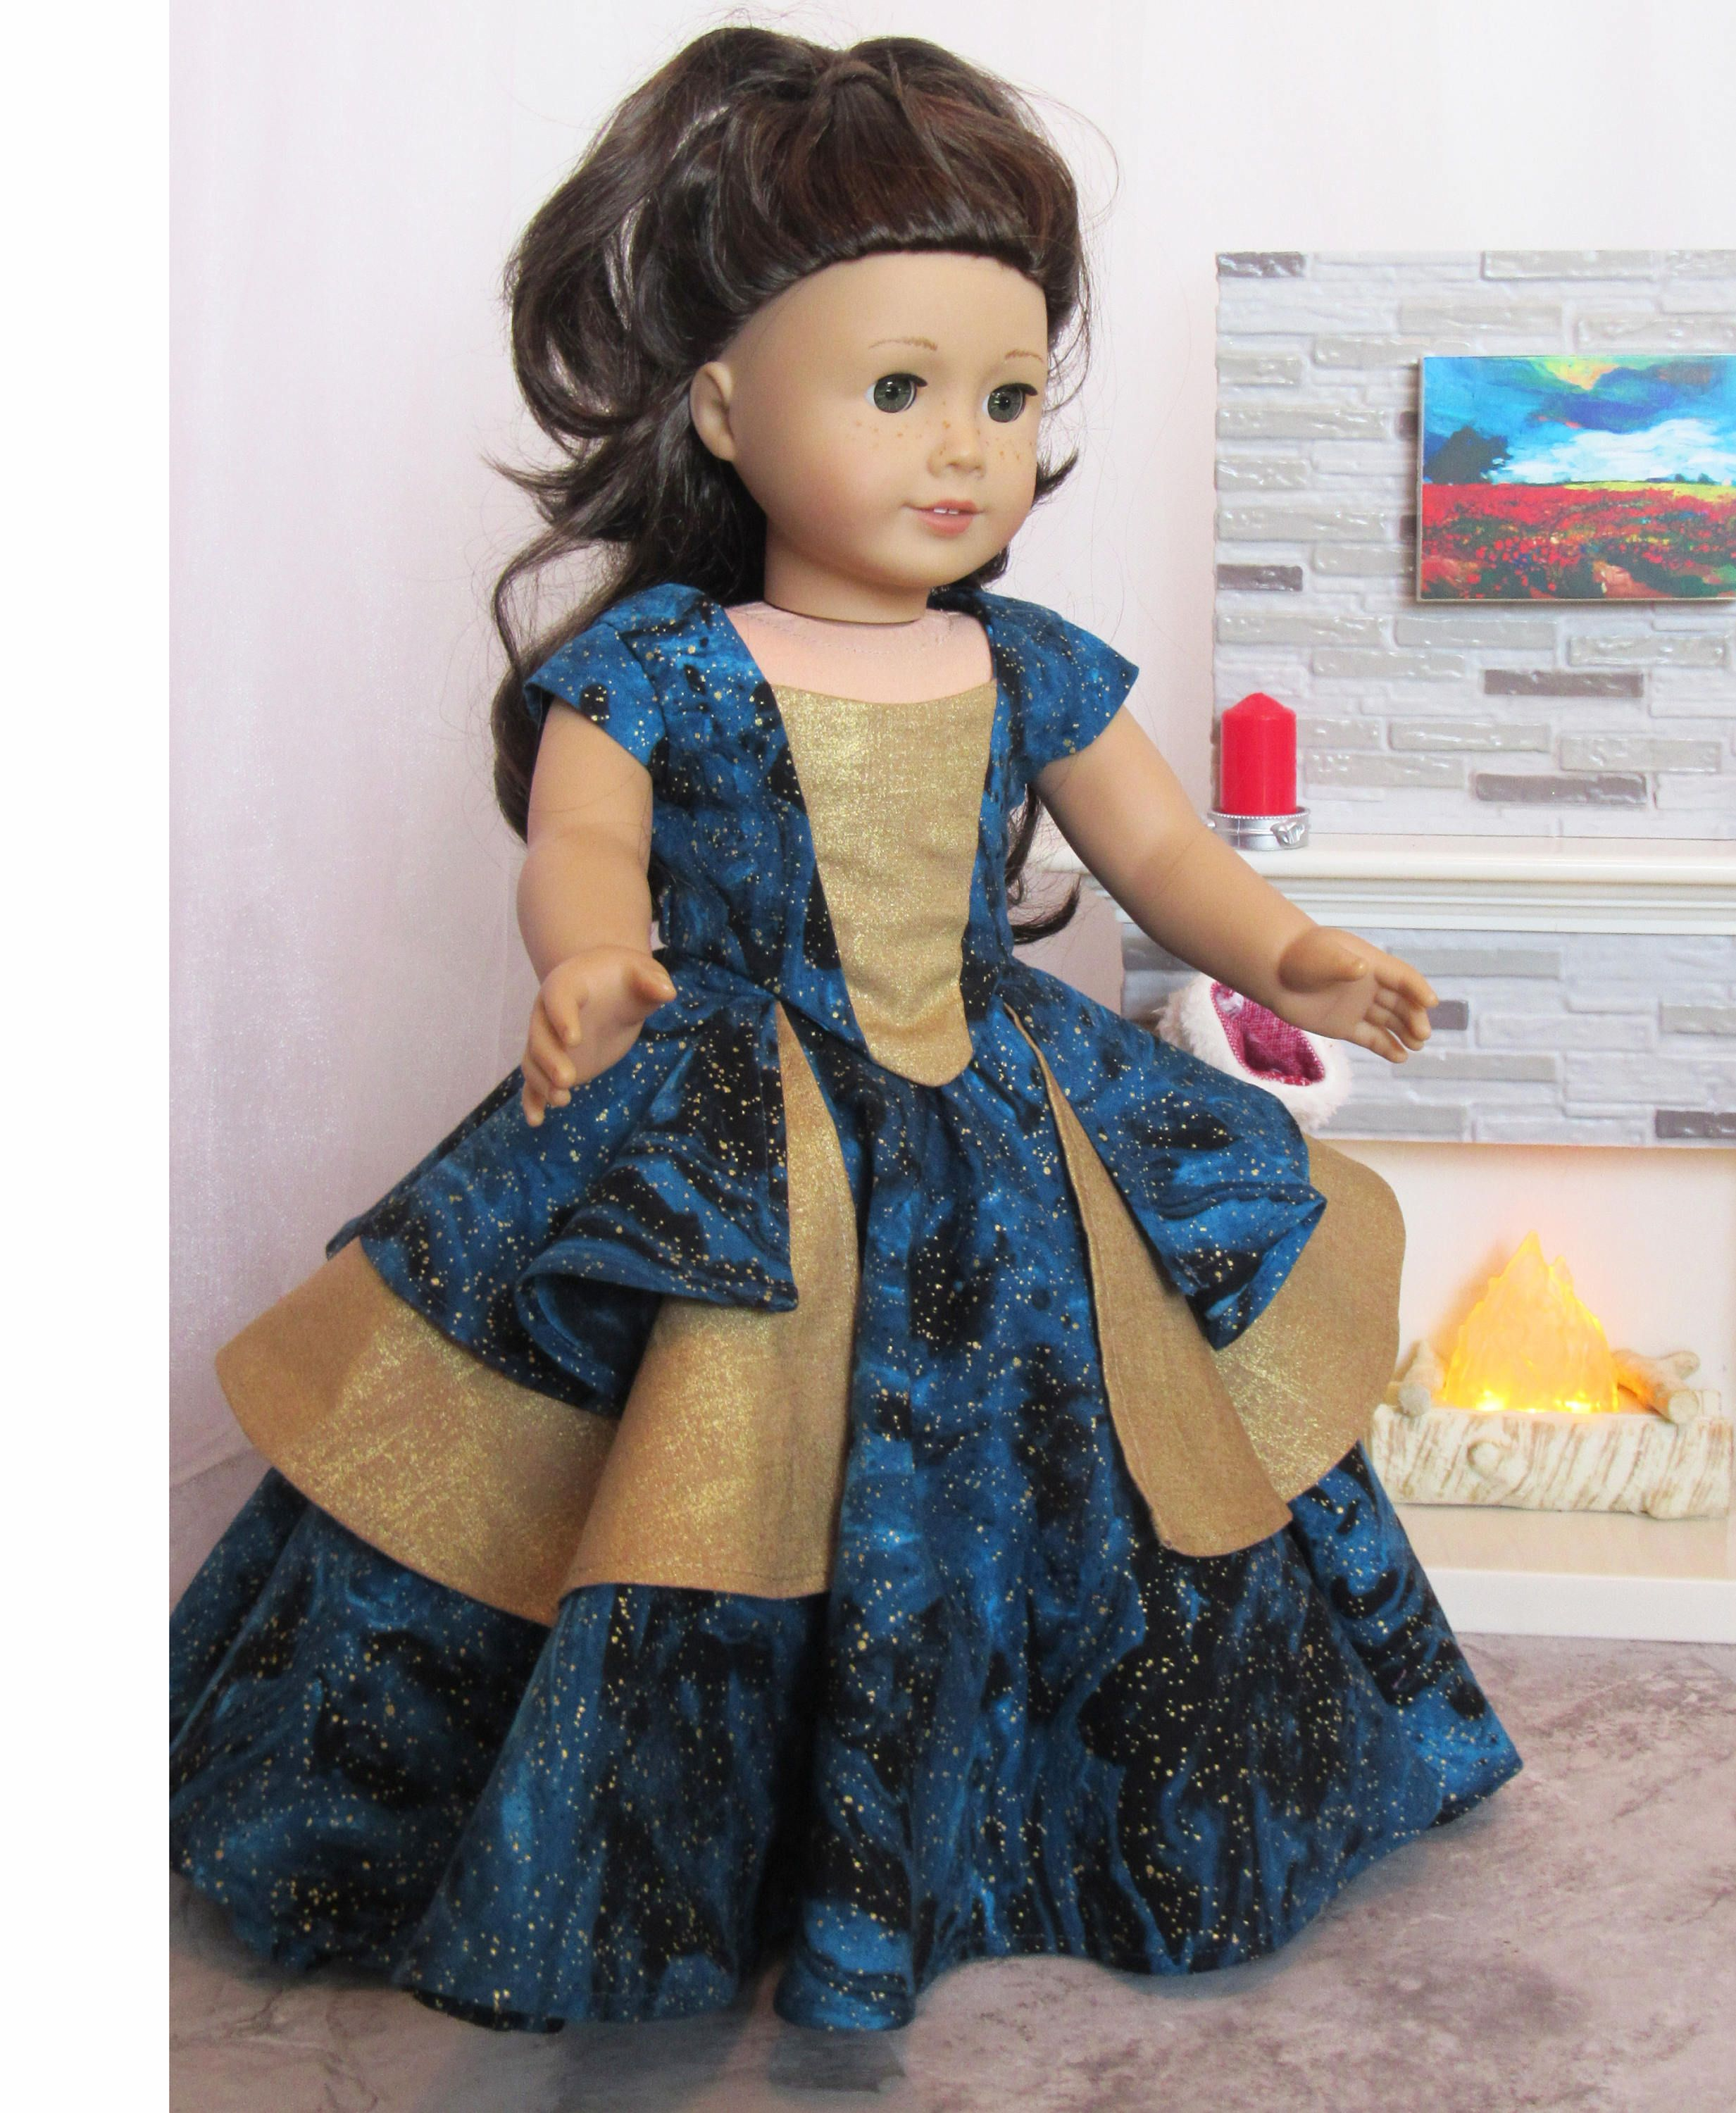 18 Doll Dress Blue and Gold Bella Rose Ball Gown #historicaldollclothes